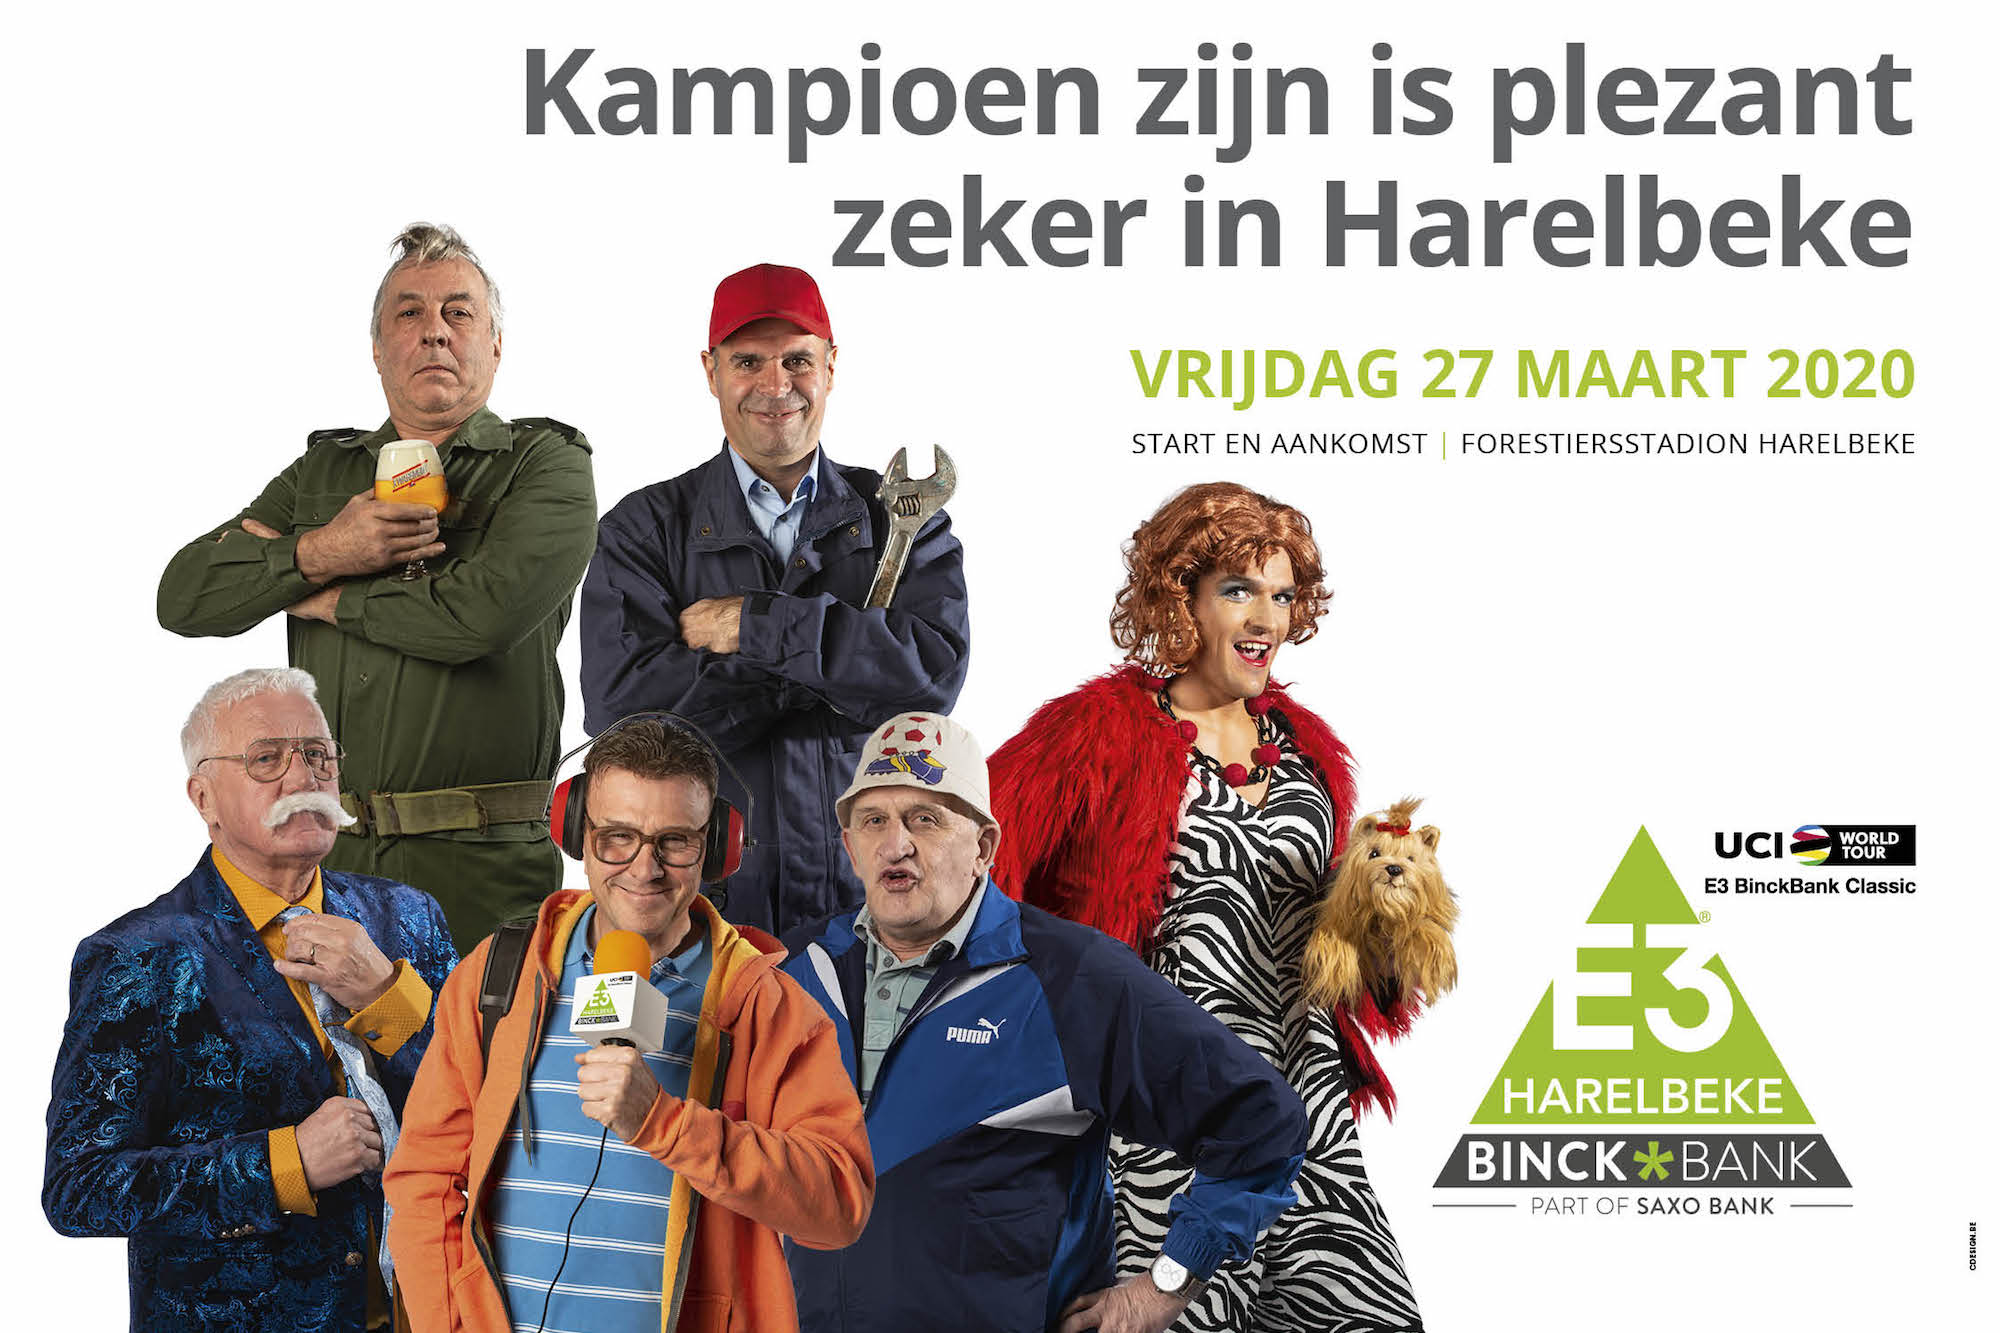 Greg Van Avermaet and Patrick Lefevere appear in bizarre new E3 BinckBank poster - Cycling Weekly